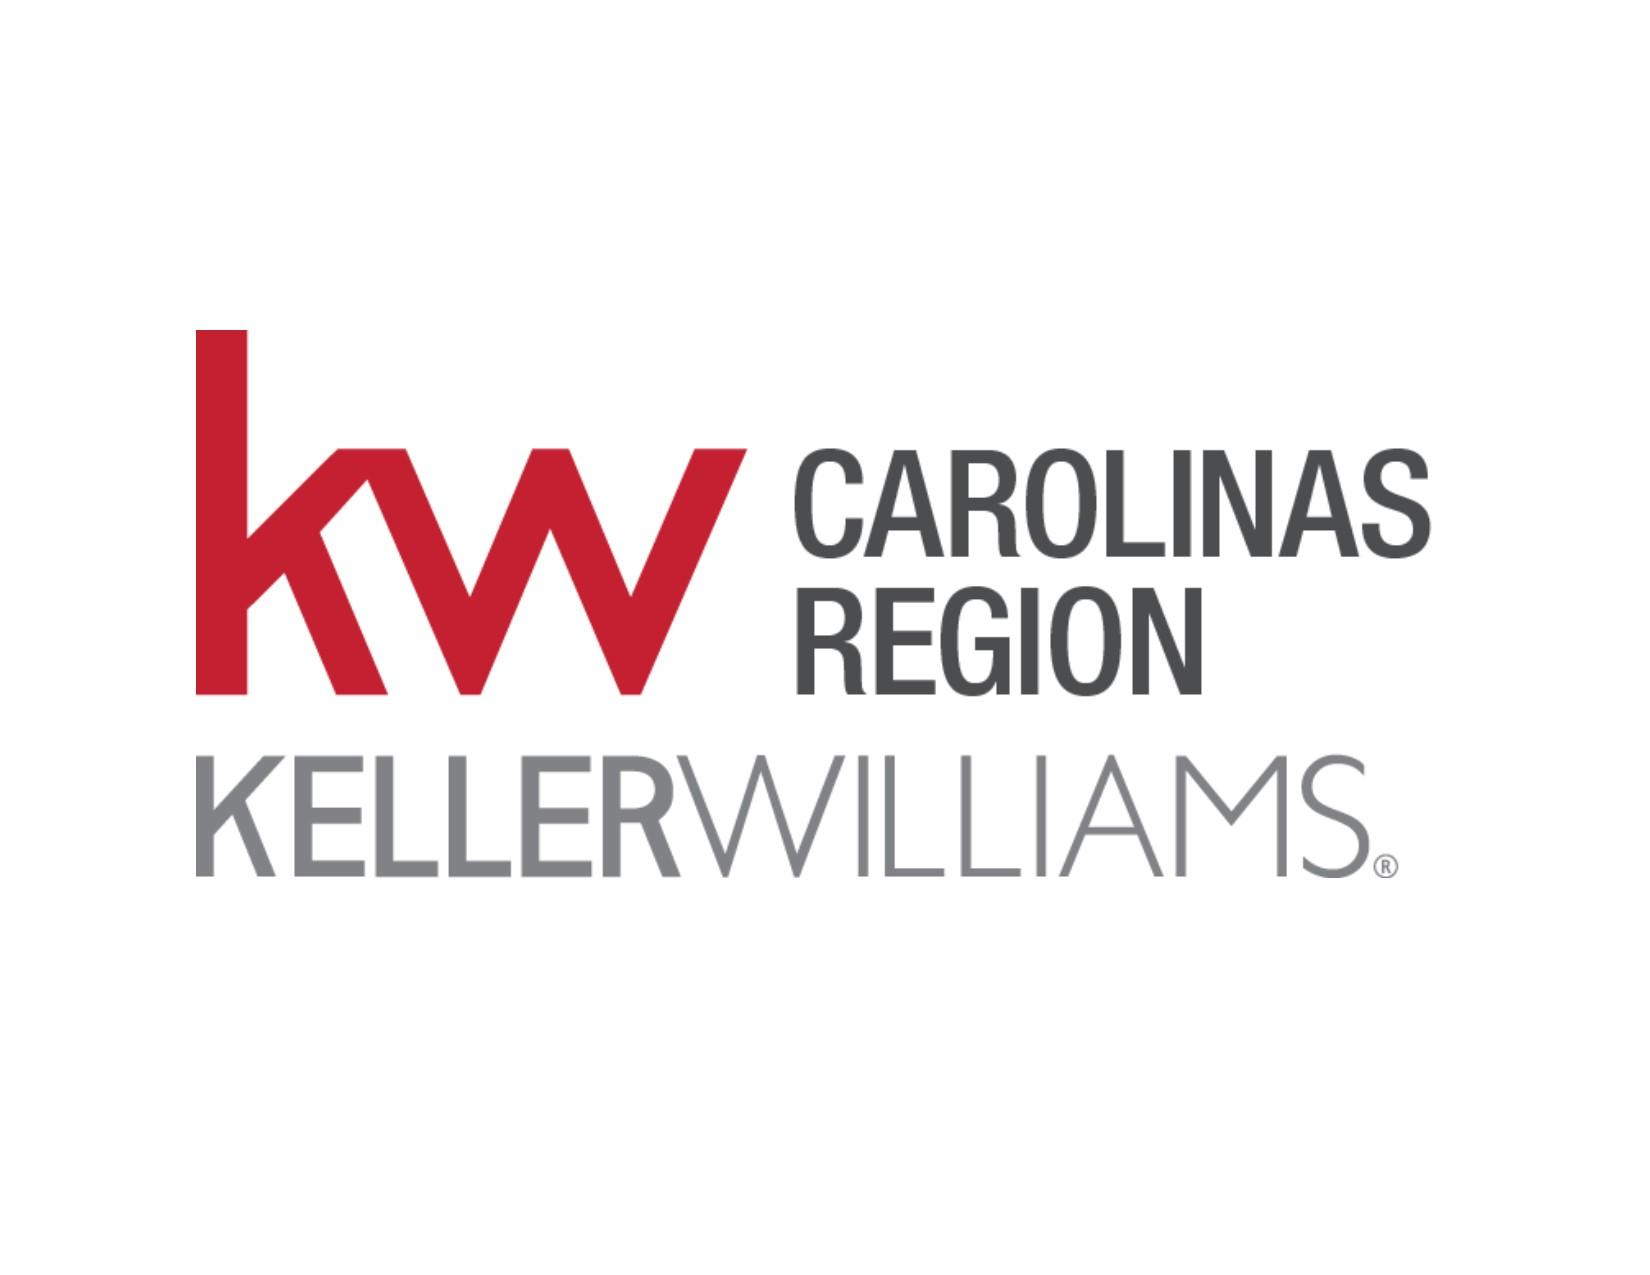 KW Carolinas - Recruiting Great Agents - January 2018 - Charlotte Area